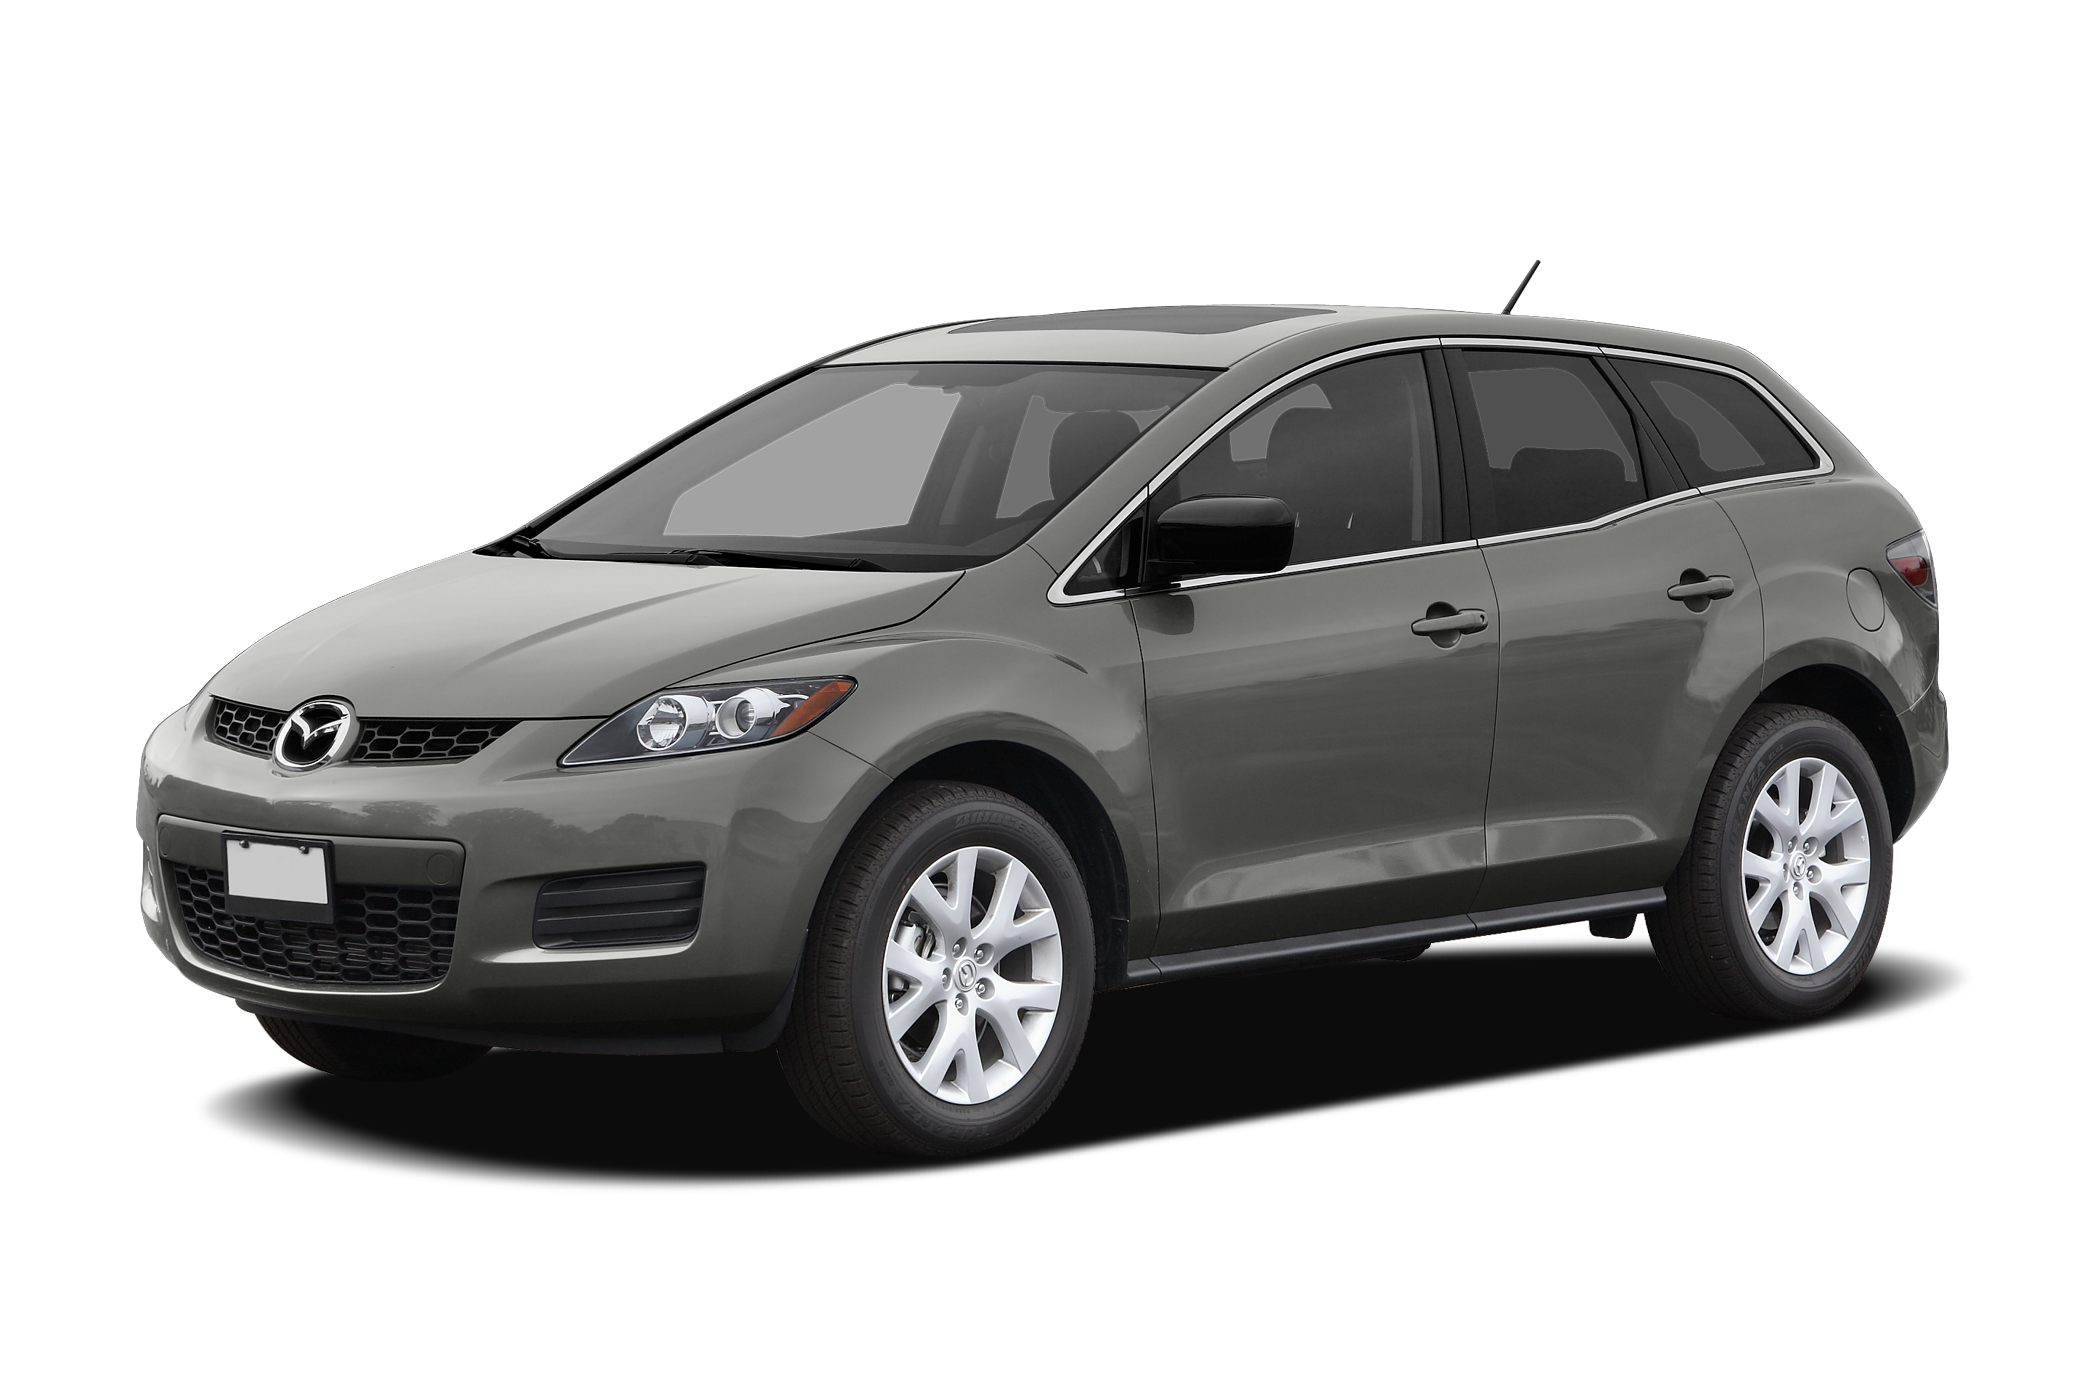 2007 Mazda CX-7 Grand Touring SUV for sale in Duluth for $0 with 129,596 miles